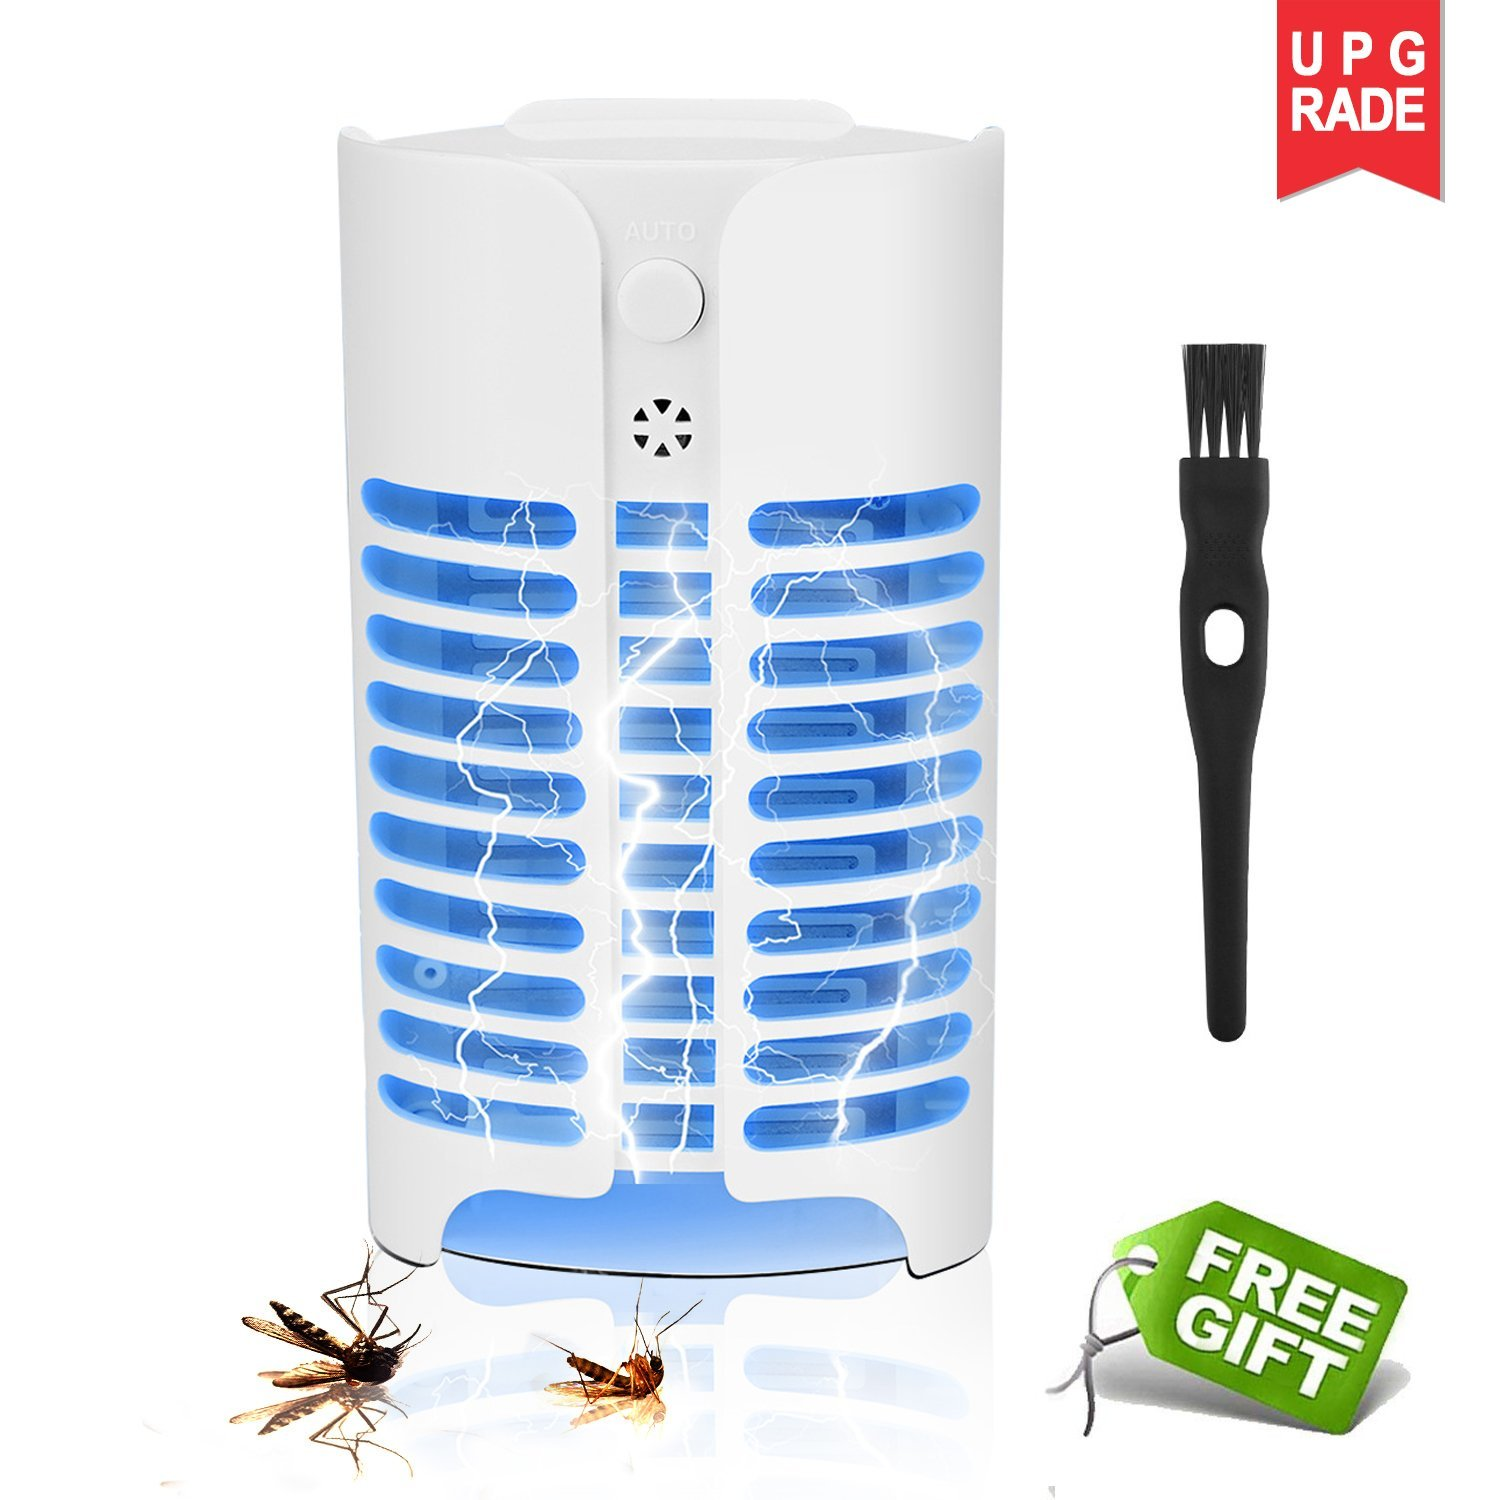 akoboo Indoor Mosquito Killer, Electronic Bug Zapper Night Lamp,Plug-in Insect Trap with Lighting Sensor Control,Eliminates Most Flying Pests for Home&Commercial by akoboo